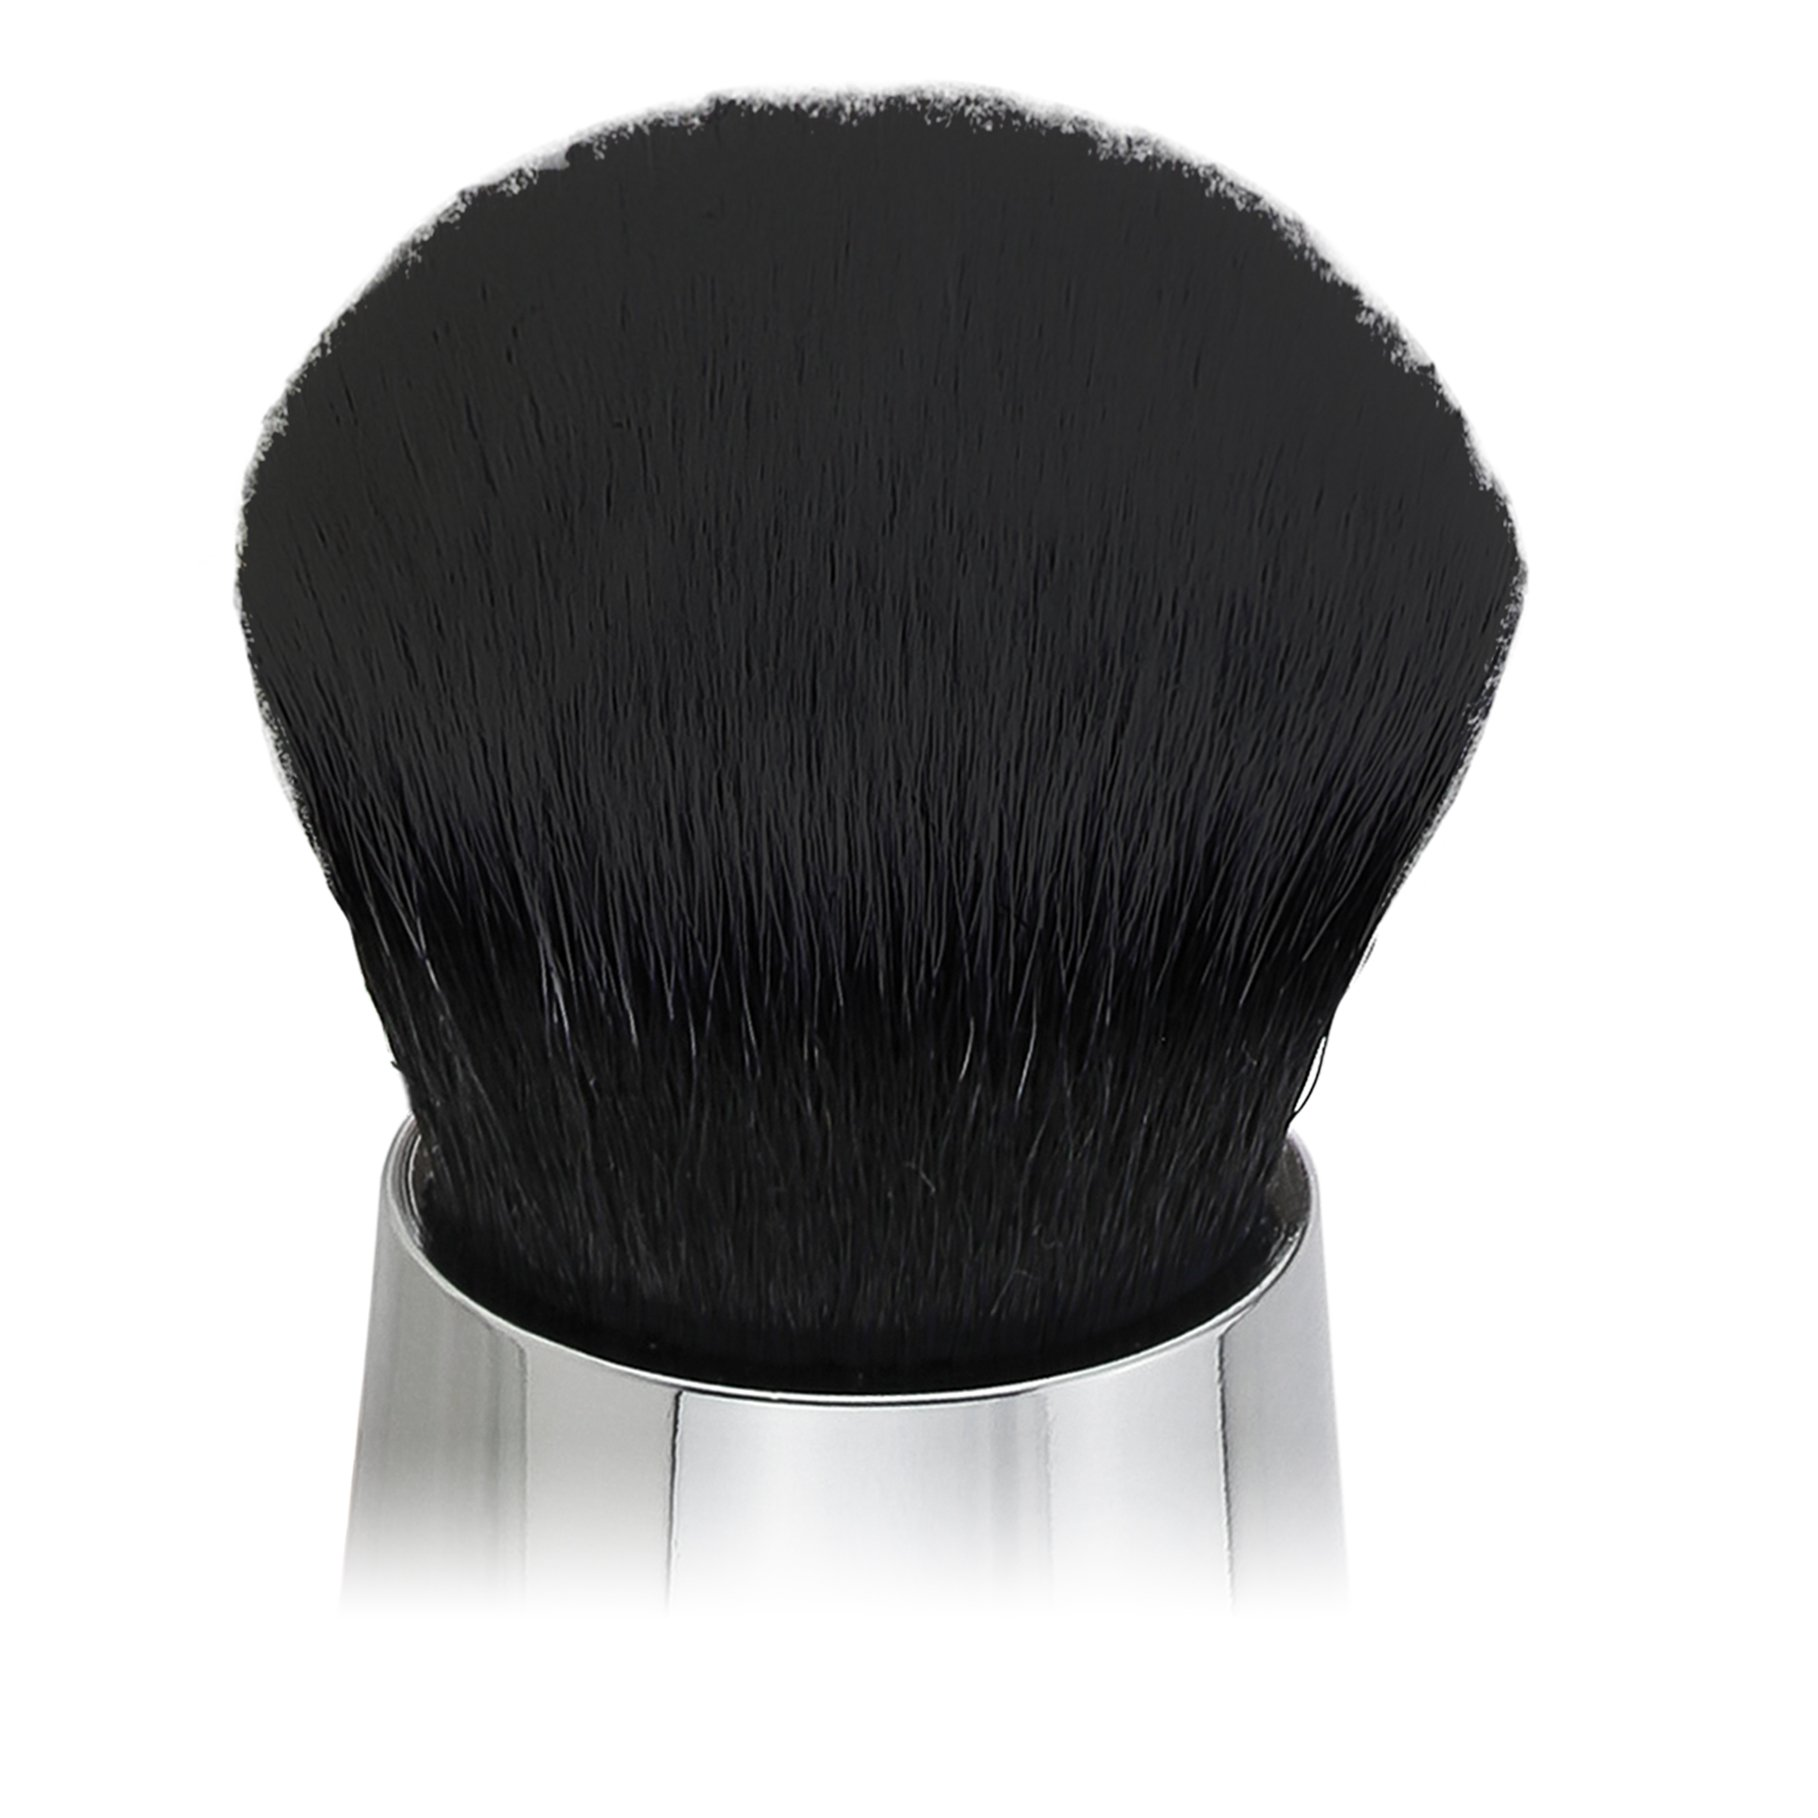 Michael Todd Sonicblend Antimicrobial Sonic Foundation Makeup Brush Replacement Head, No. 6 - Precision Tip